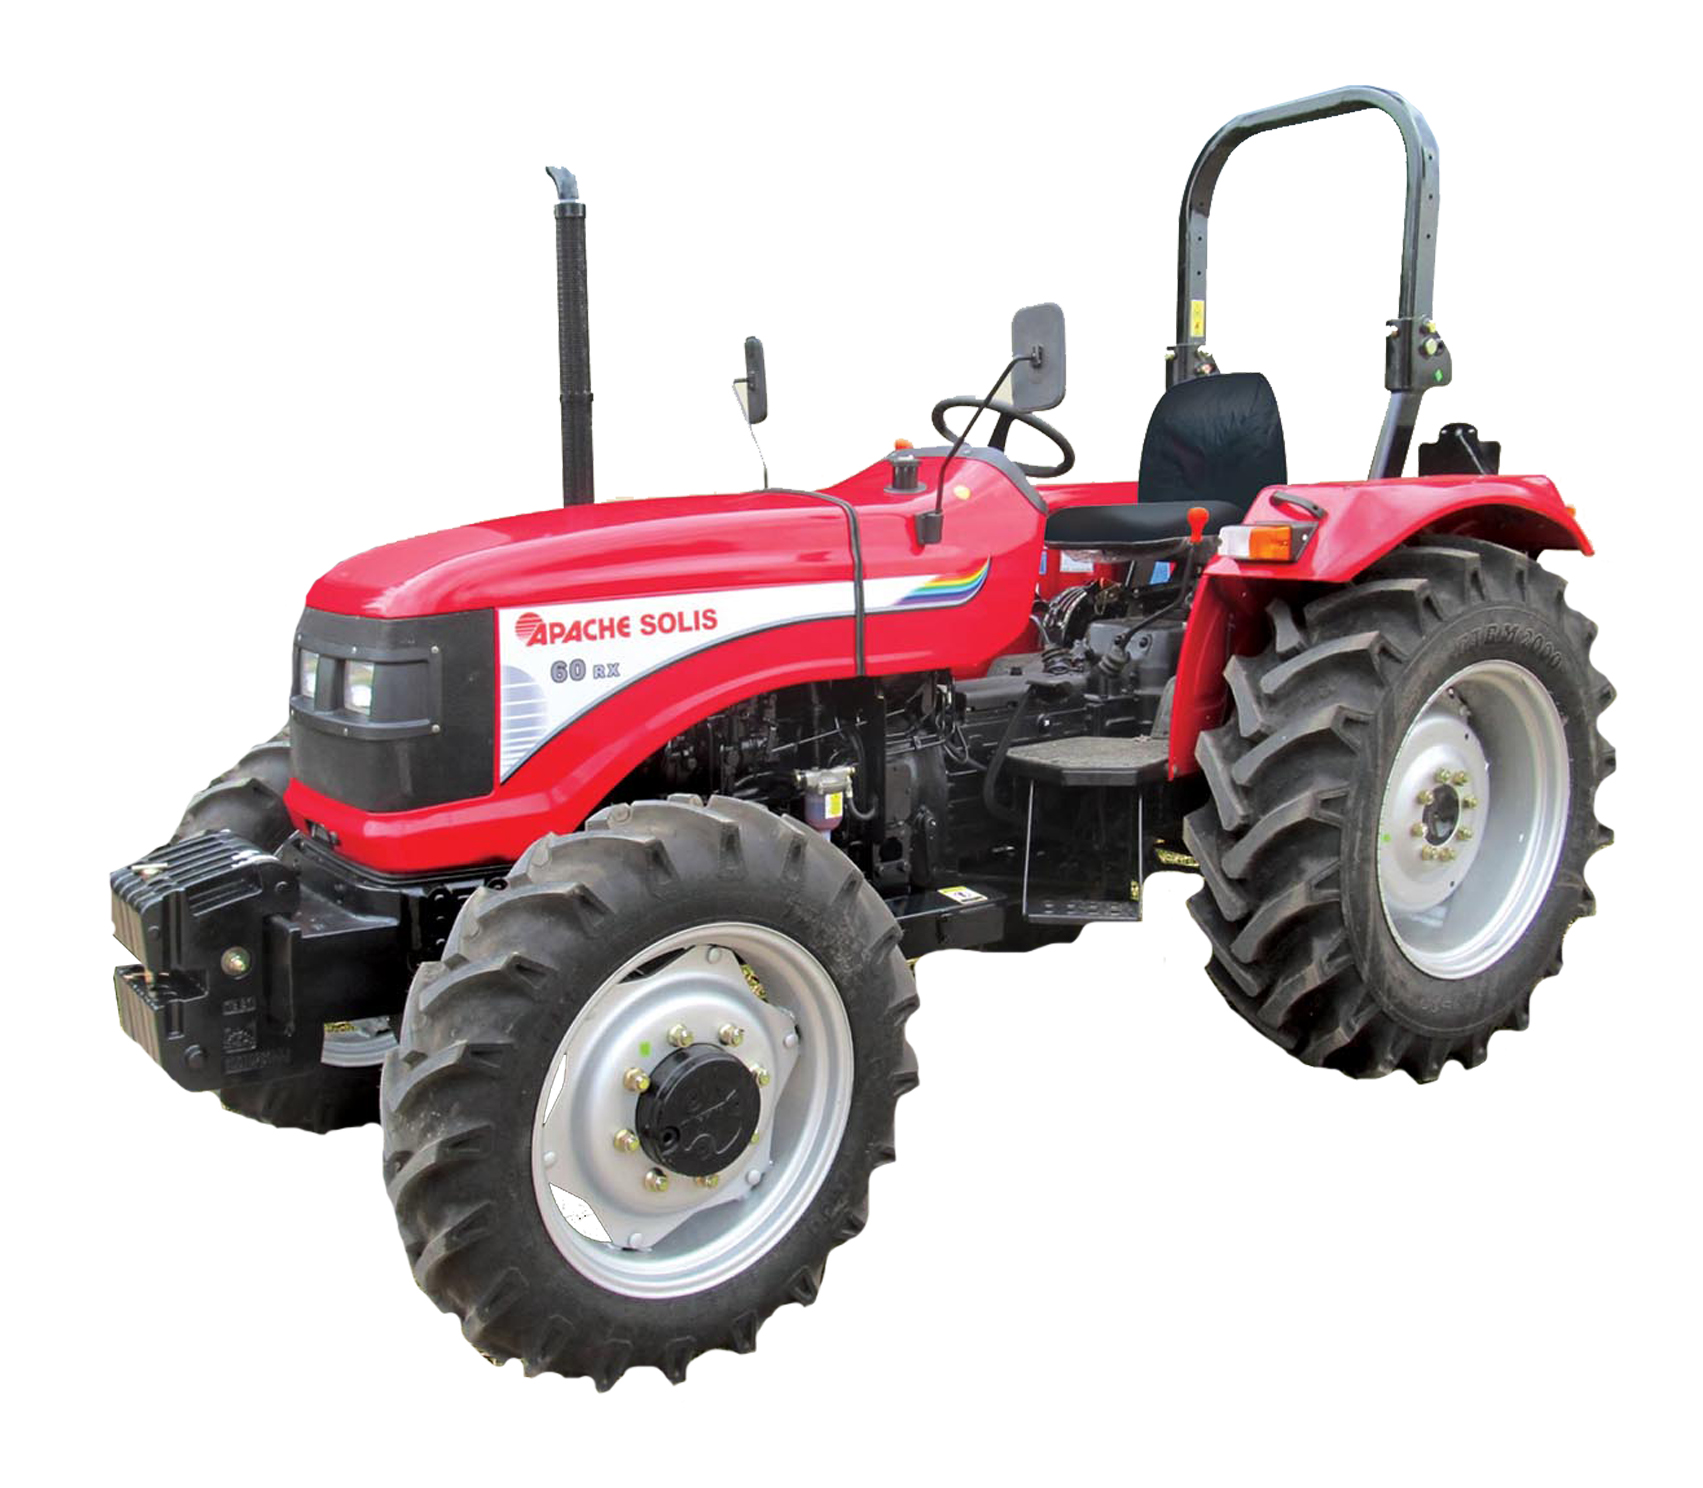 TRACTOR AS 60 RX 4WD